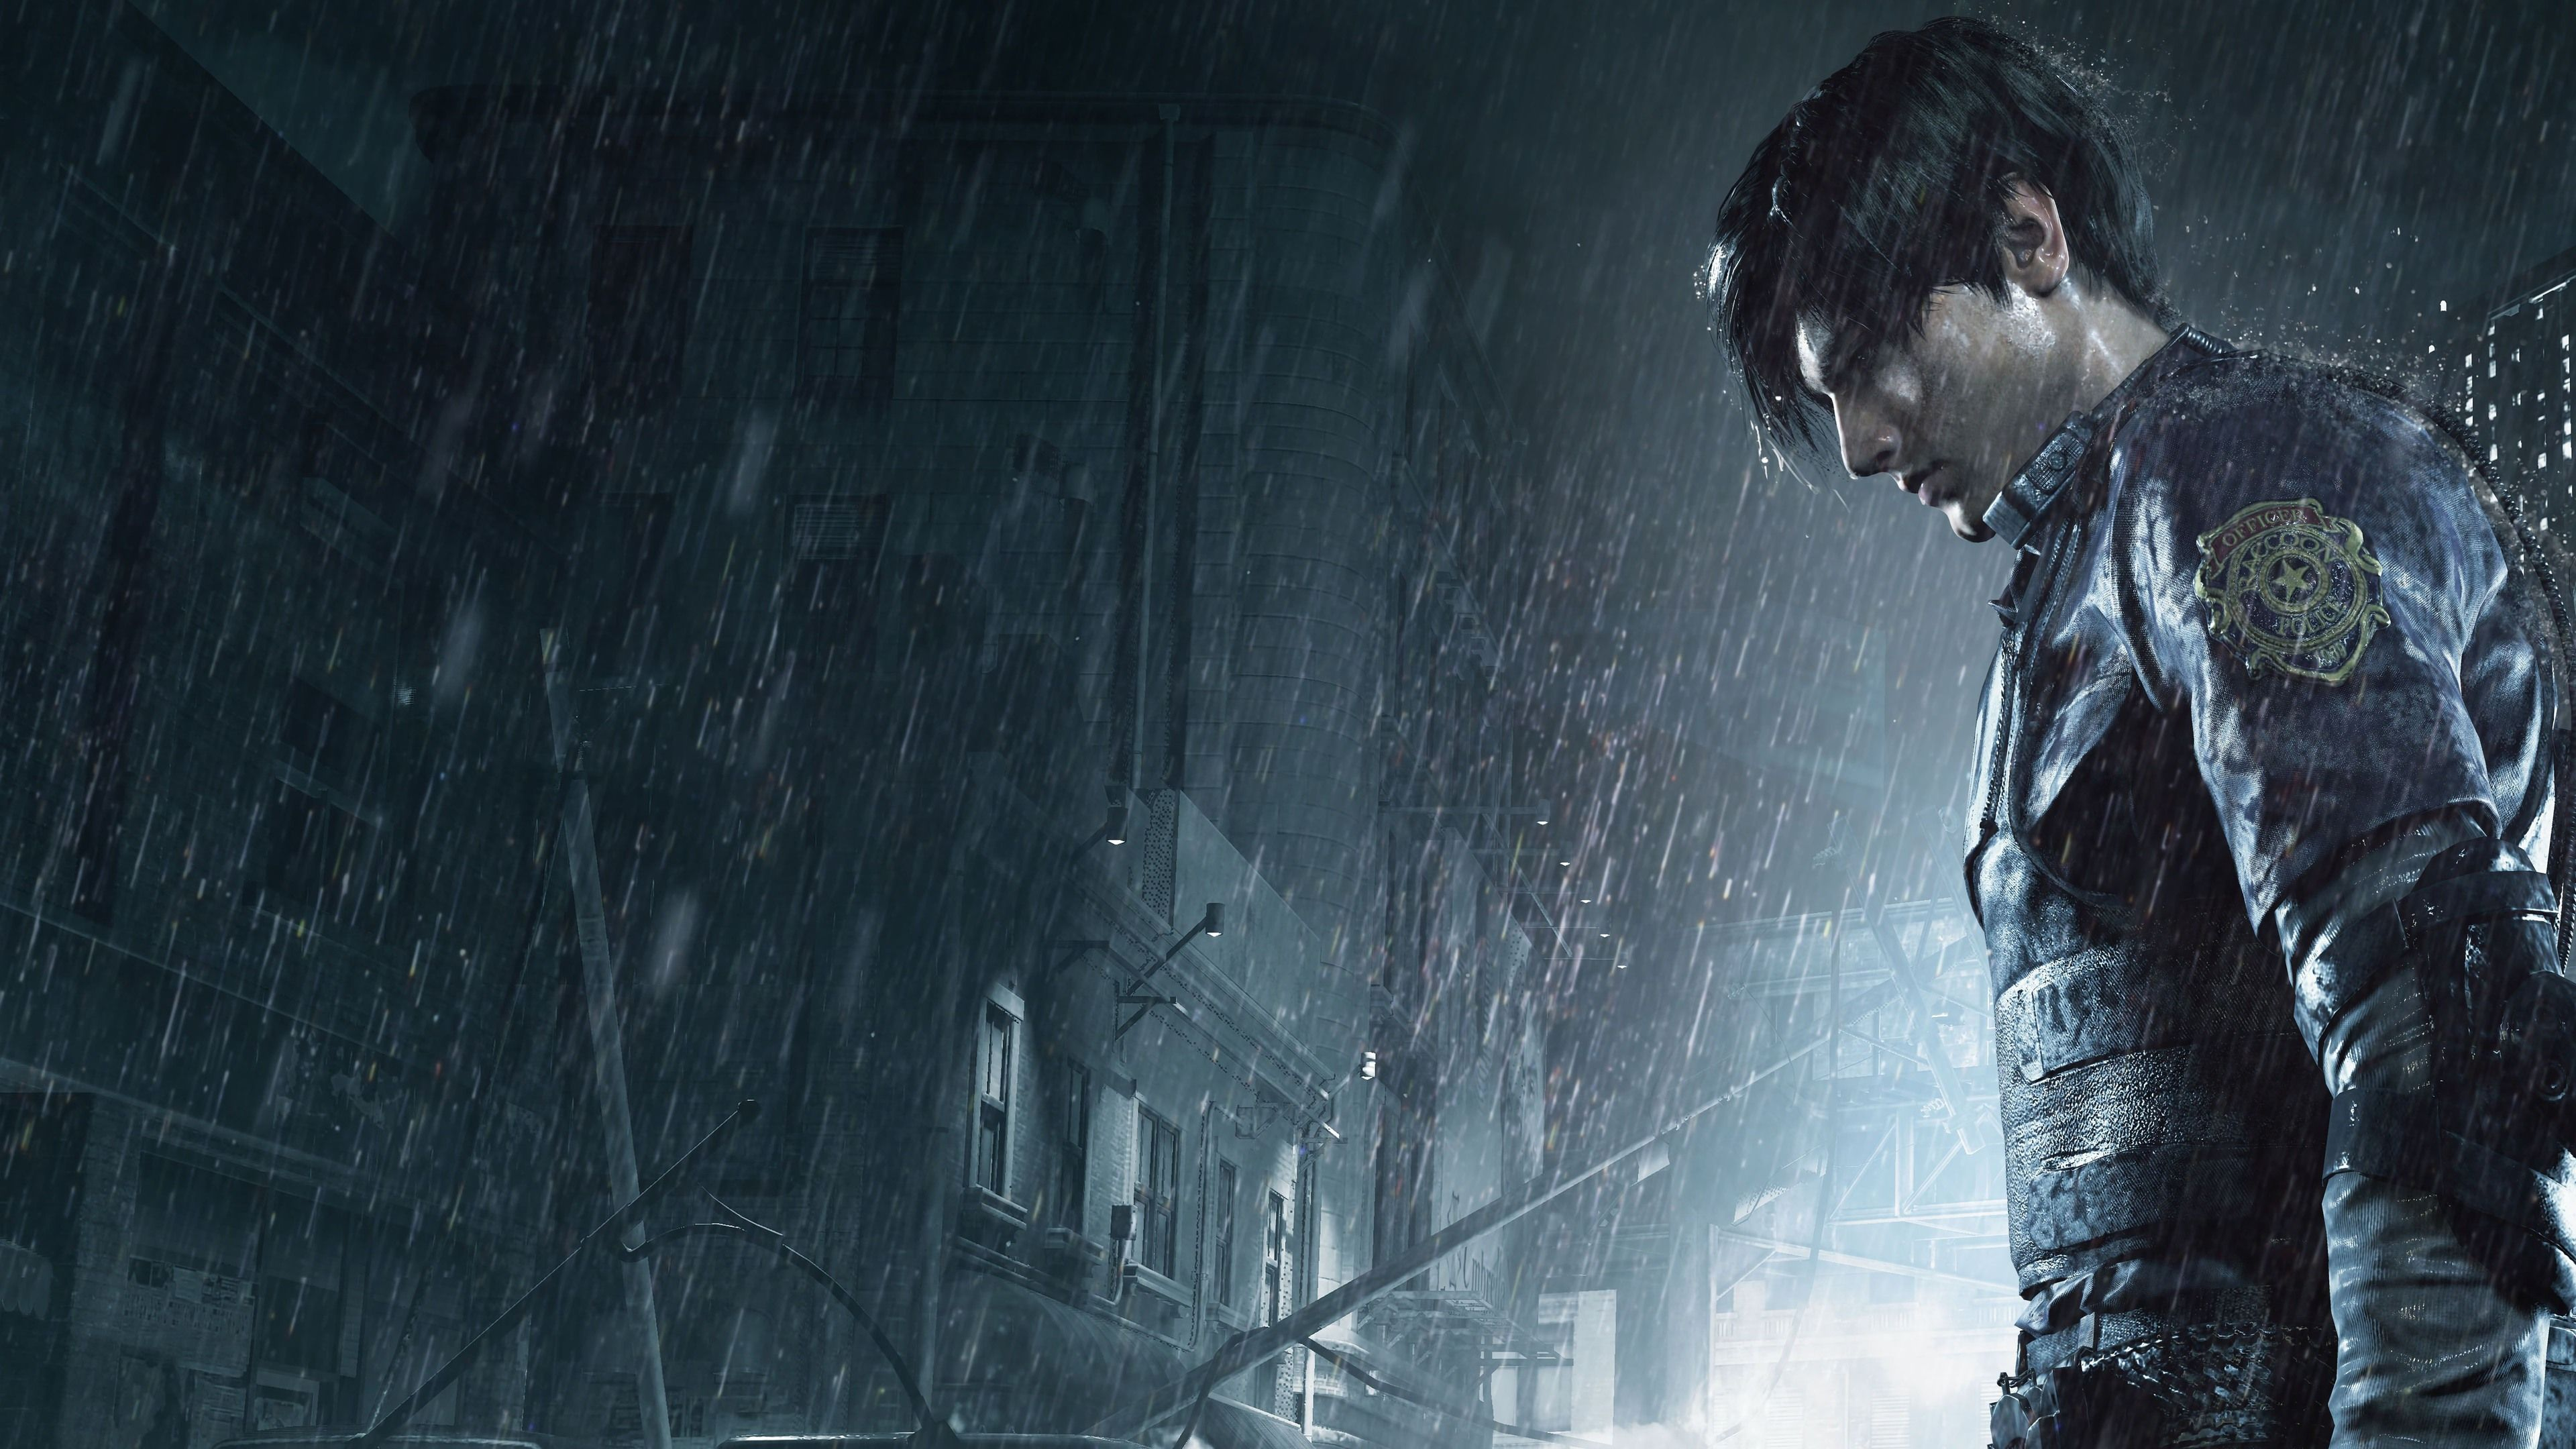 Leon Kennedy Resident Evil 2 Resident Evil 2 Wallpapers